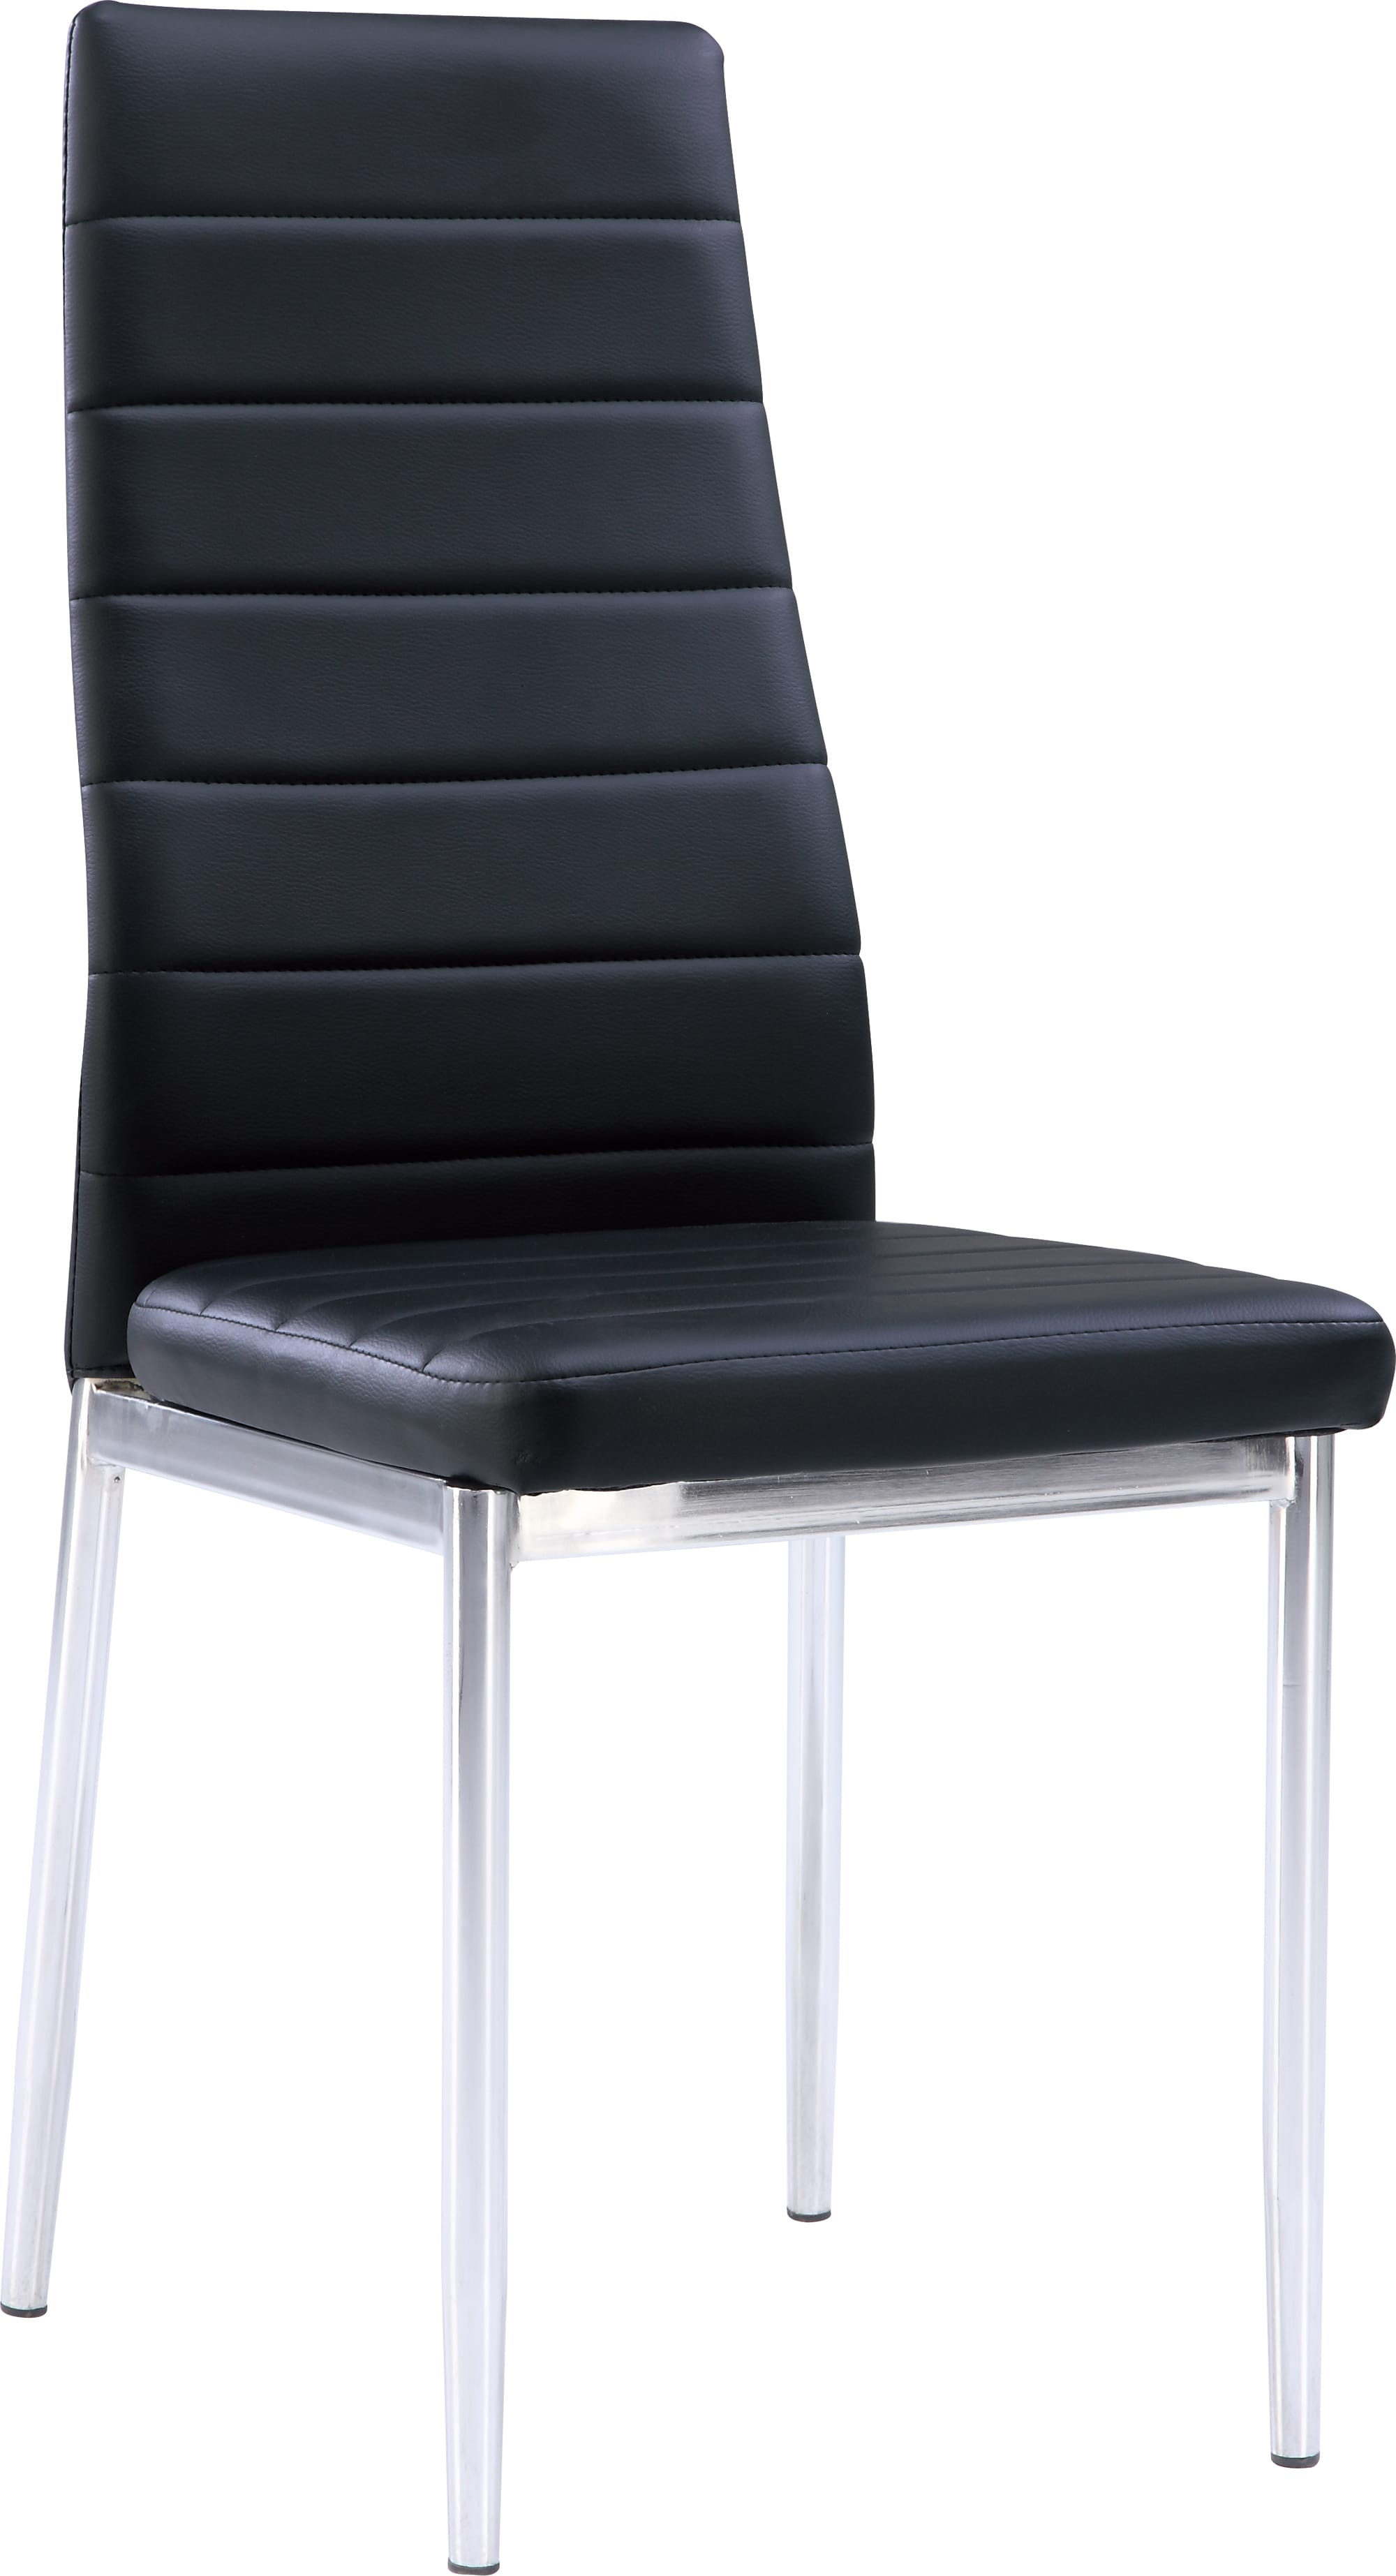 Dining Chair D140DC BL Set of 2 Black by Global Furniture : D140DC BL from futonland.com size 2000 x 3691 jpeg 1517kB